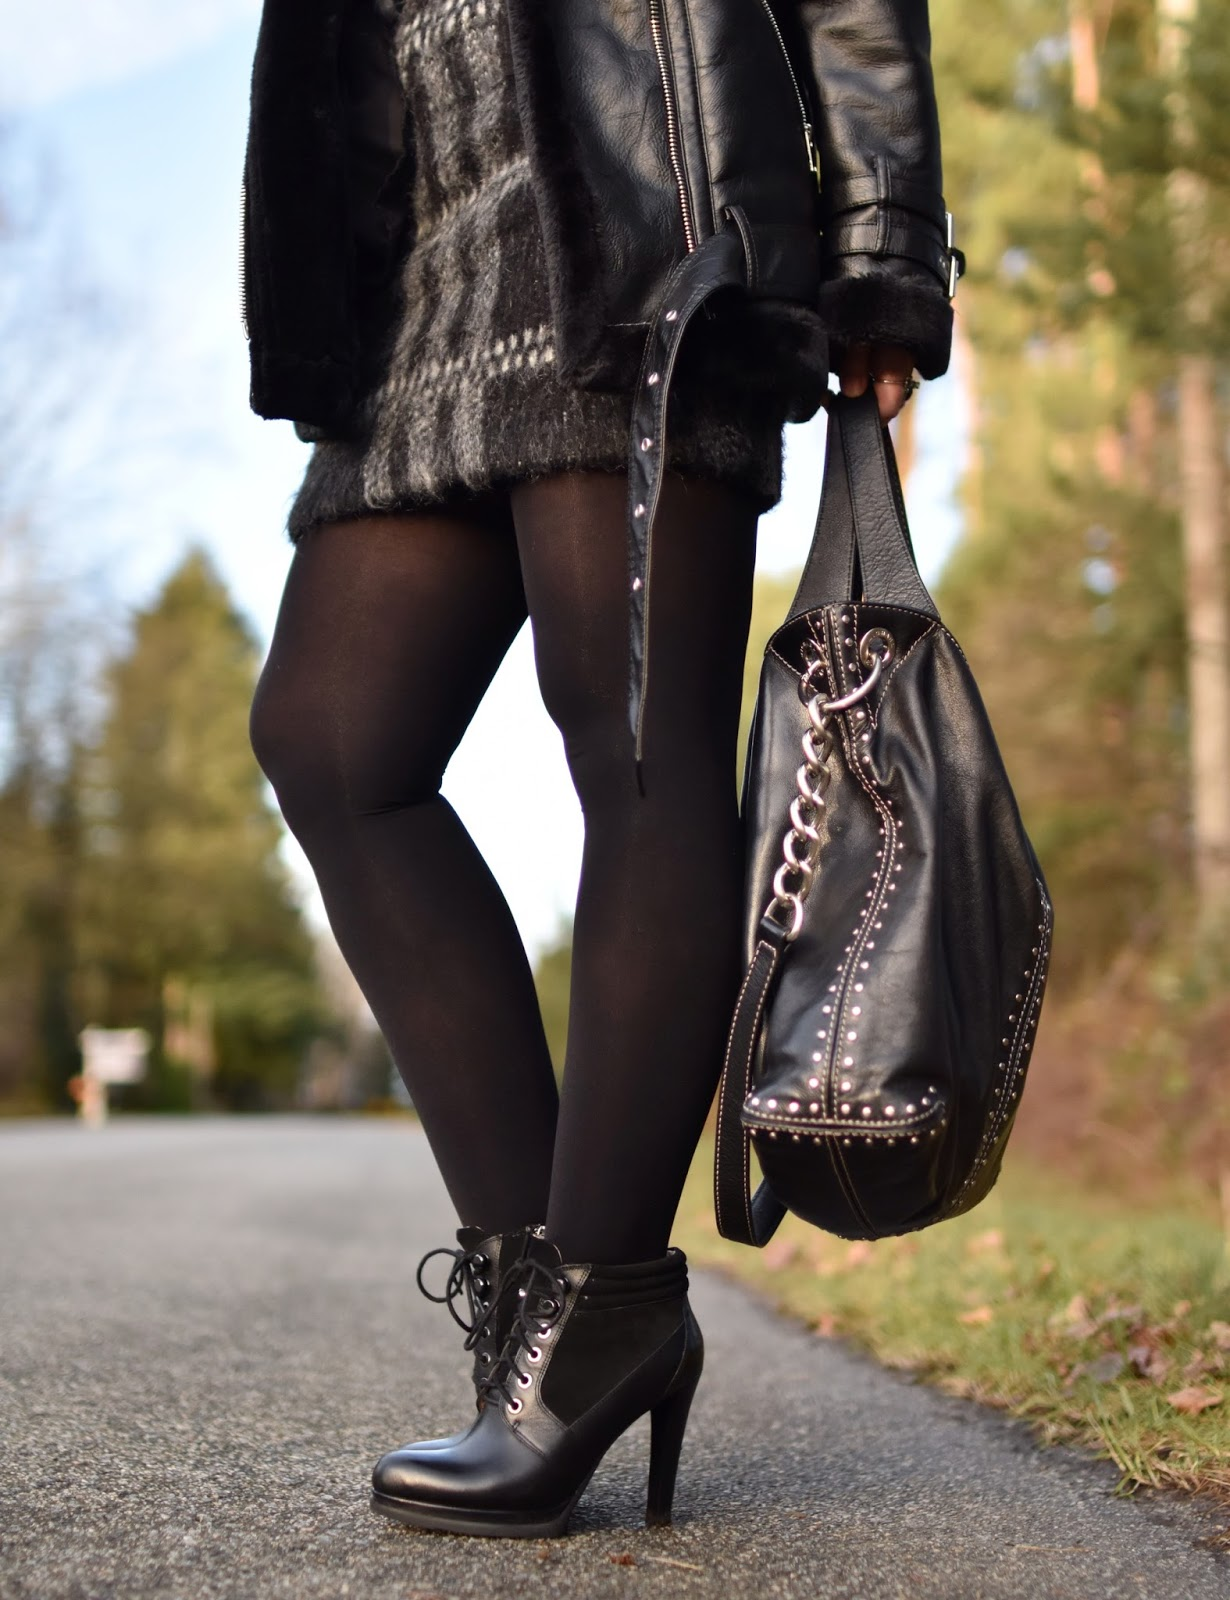 Monika Faulkner outfit inspiration - plaid mohair miniskirt, opaque tights, lace-up booties, moto-inspired coat, MK bag